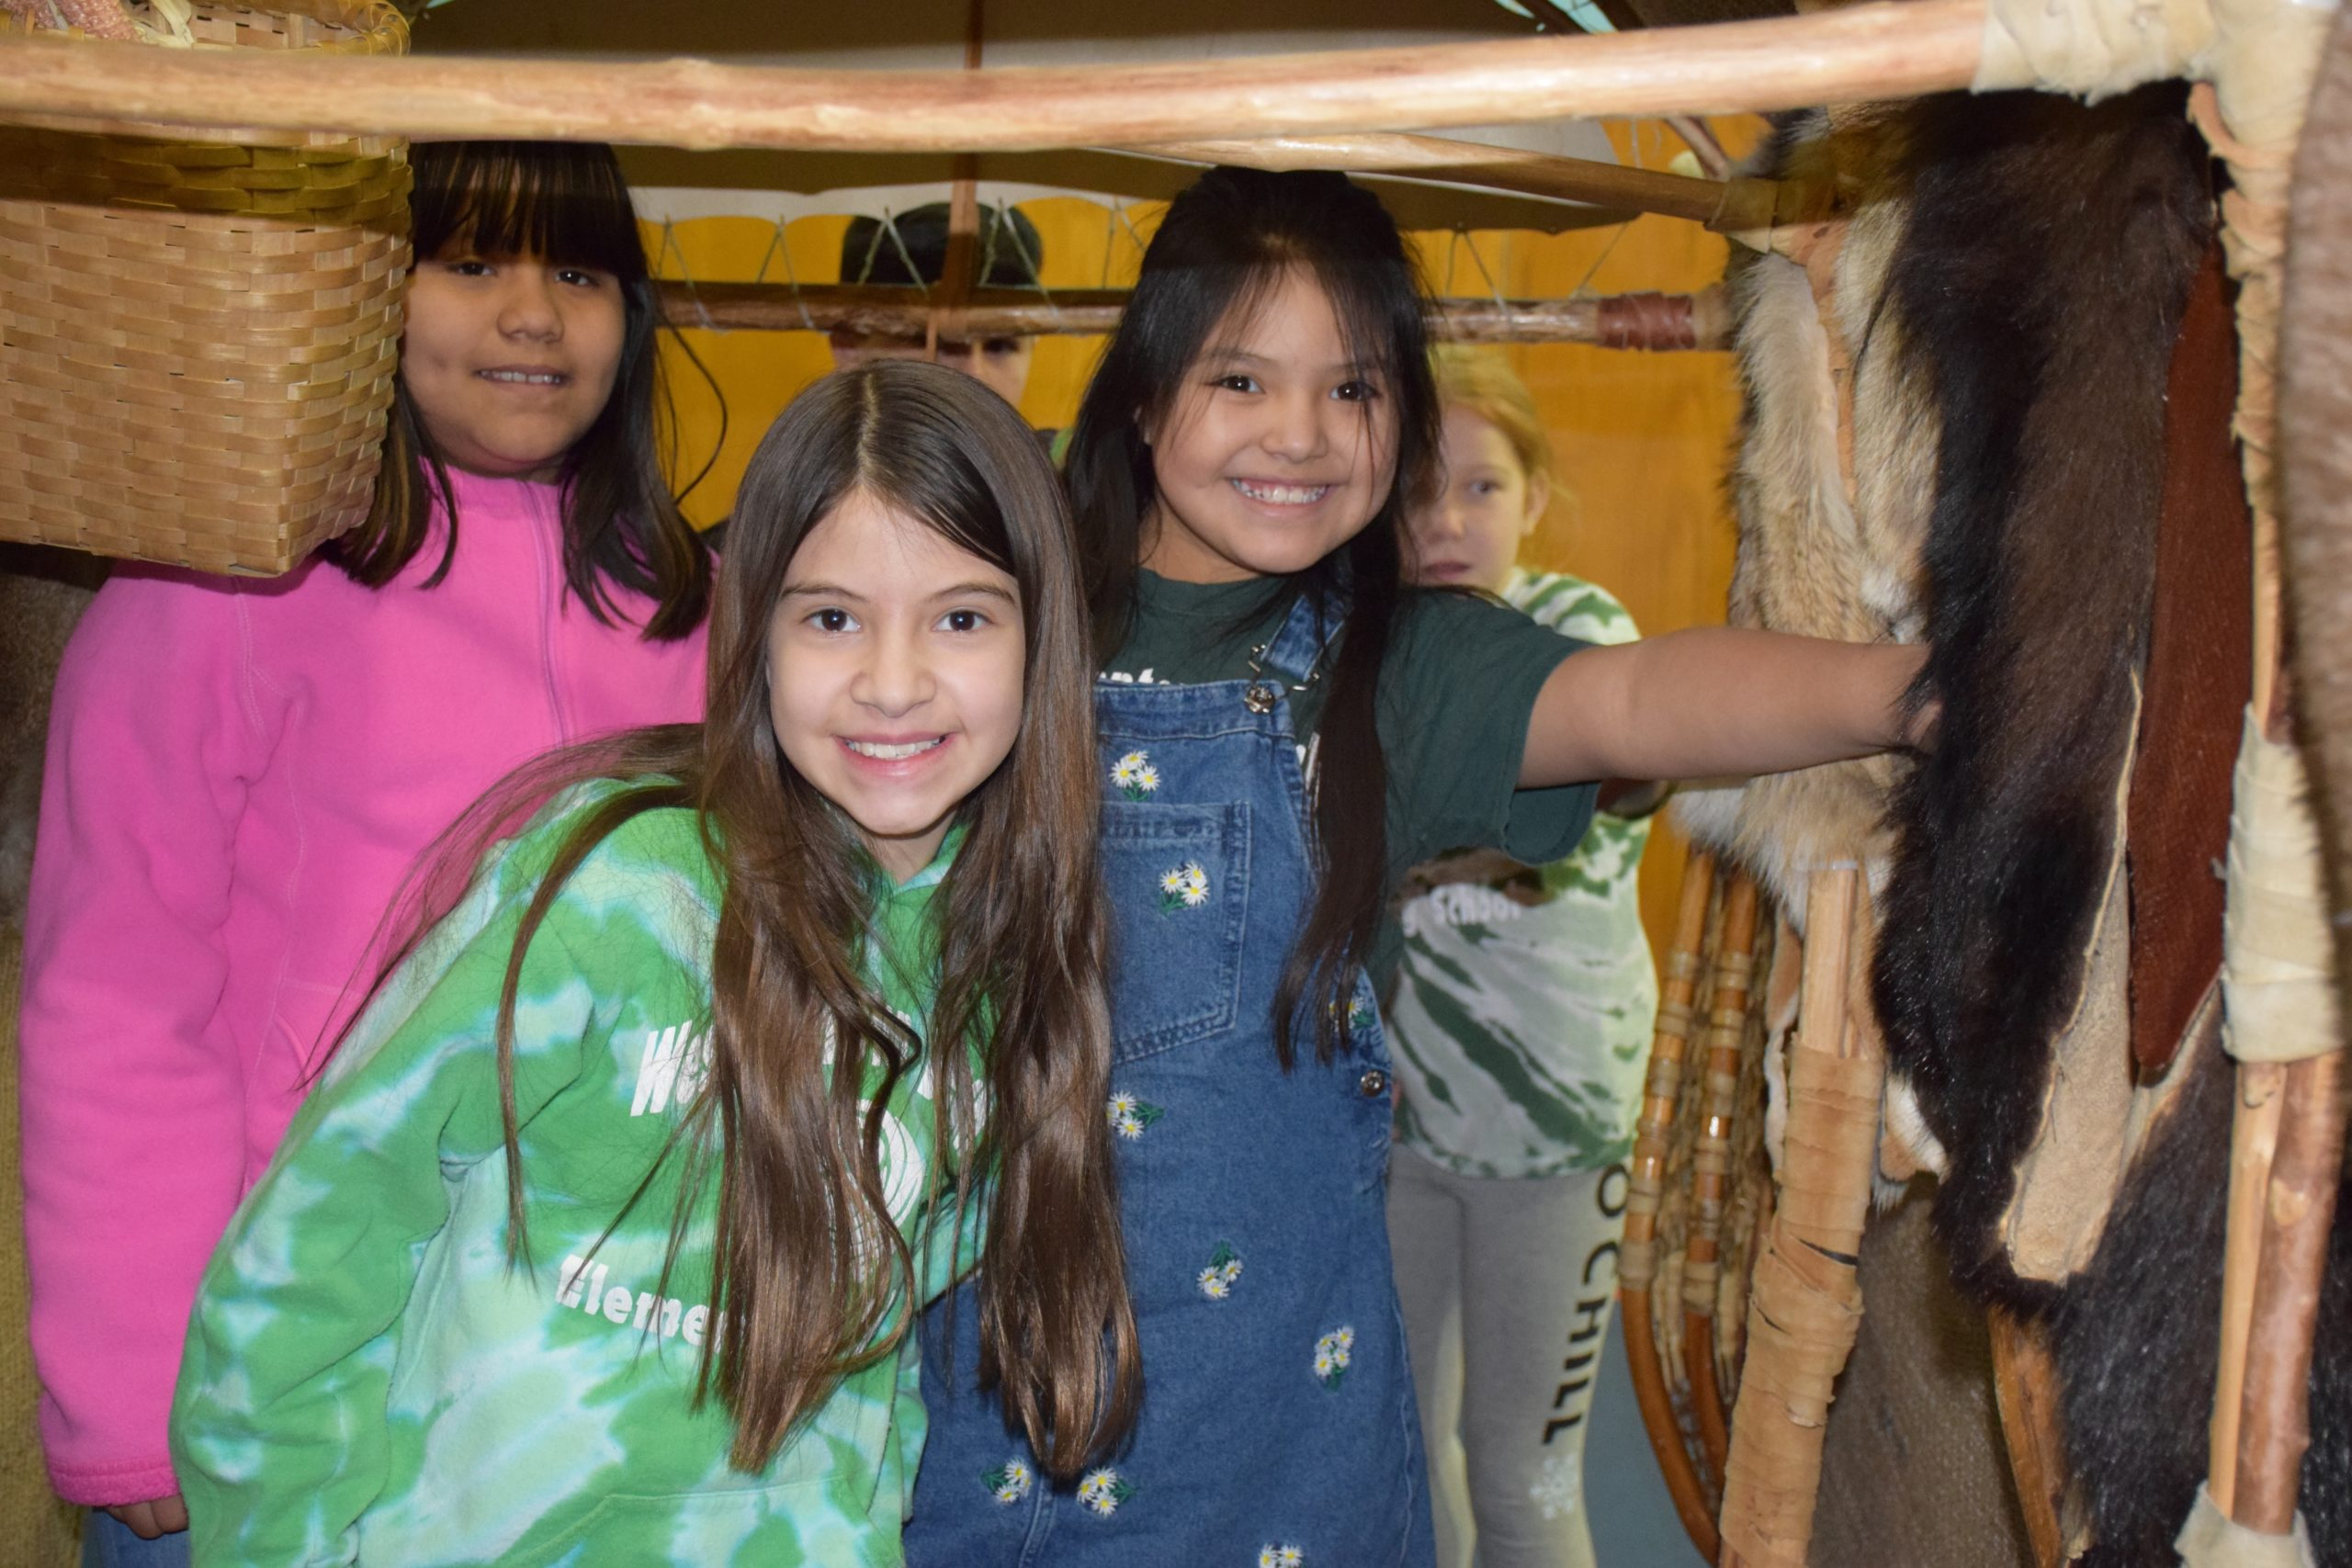 Westhampton Beach Elementary School fourth graders explored Native American artifacts during a special hands-on program, Journeys into American Indian Territory, an annual program sponsored by the PTA.